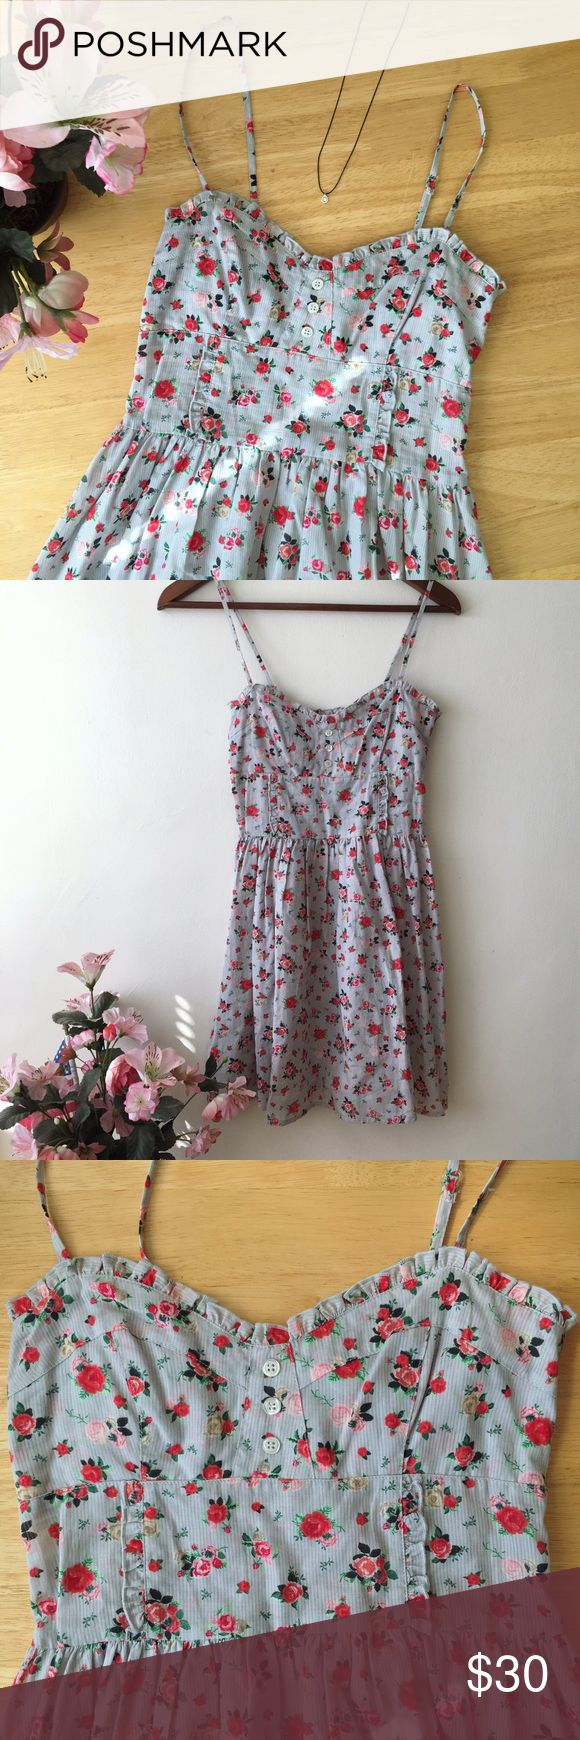 Divided by H&M Blue Spaghetti Strap Floral Dress NWOT H&M Floral Dress with Lace and Button Detail. Never worn! Beautiful sold out dress just in time for summer. Runs small, fits closer to size 2. H&M Dresses